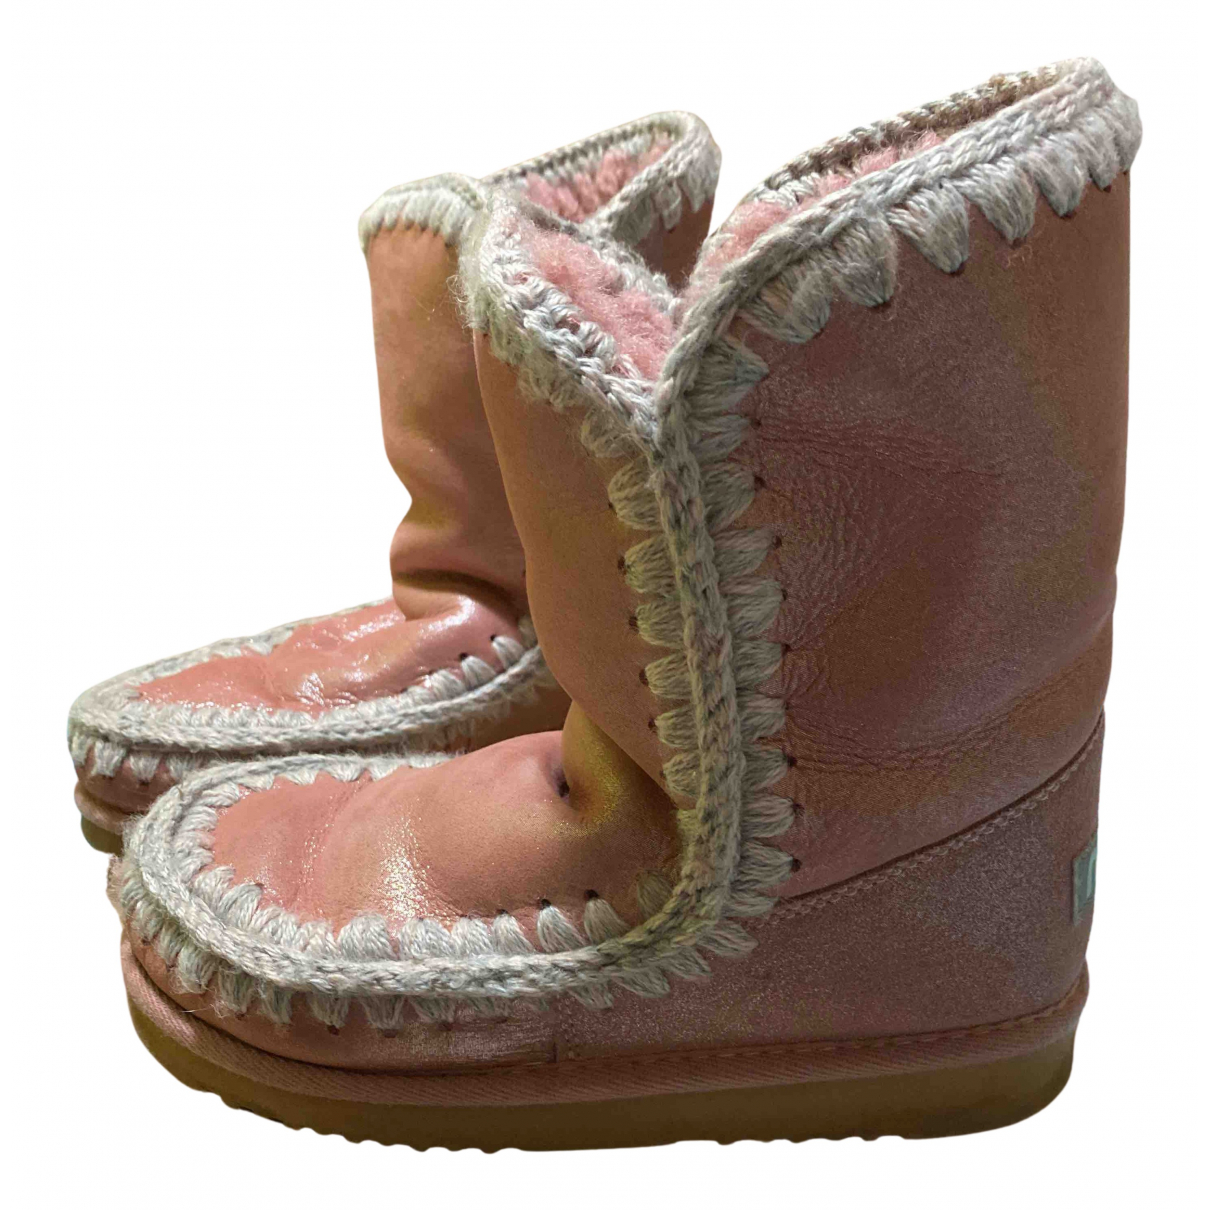 Mou N Pink Leather Boots for Women 38 EU